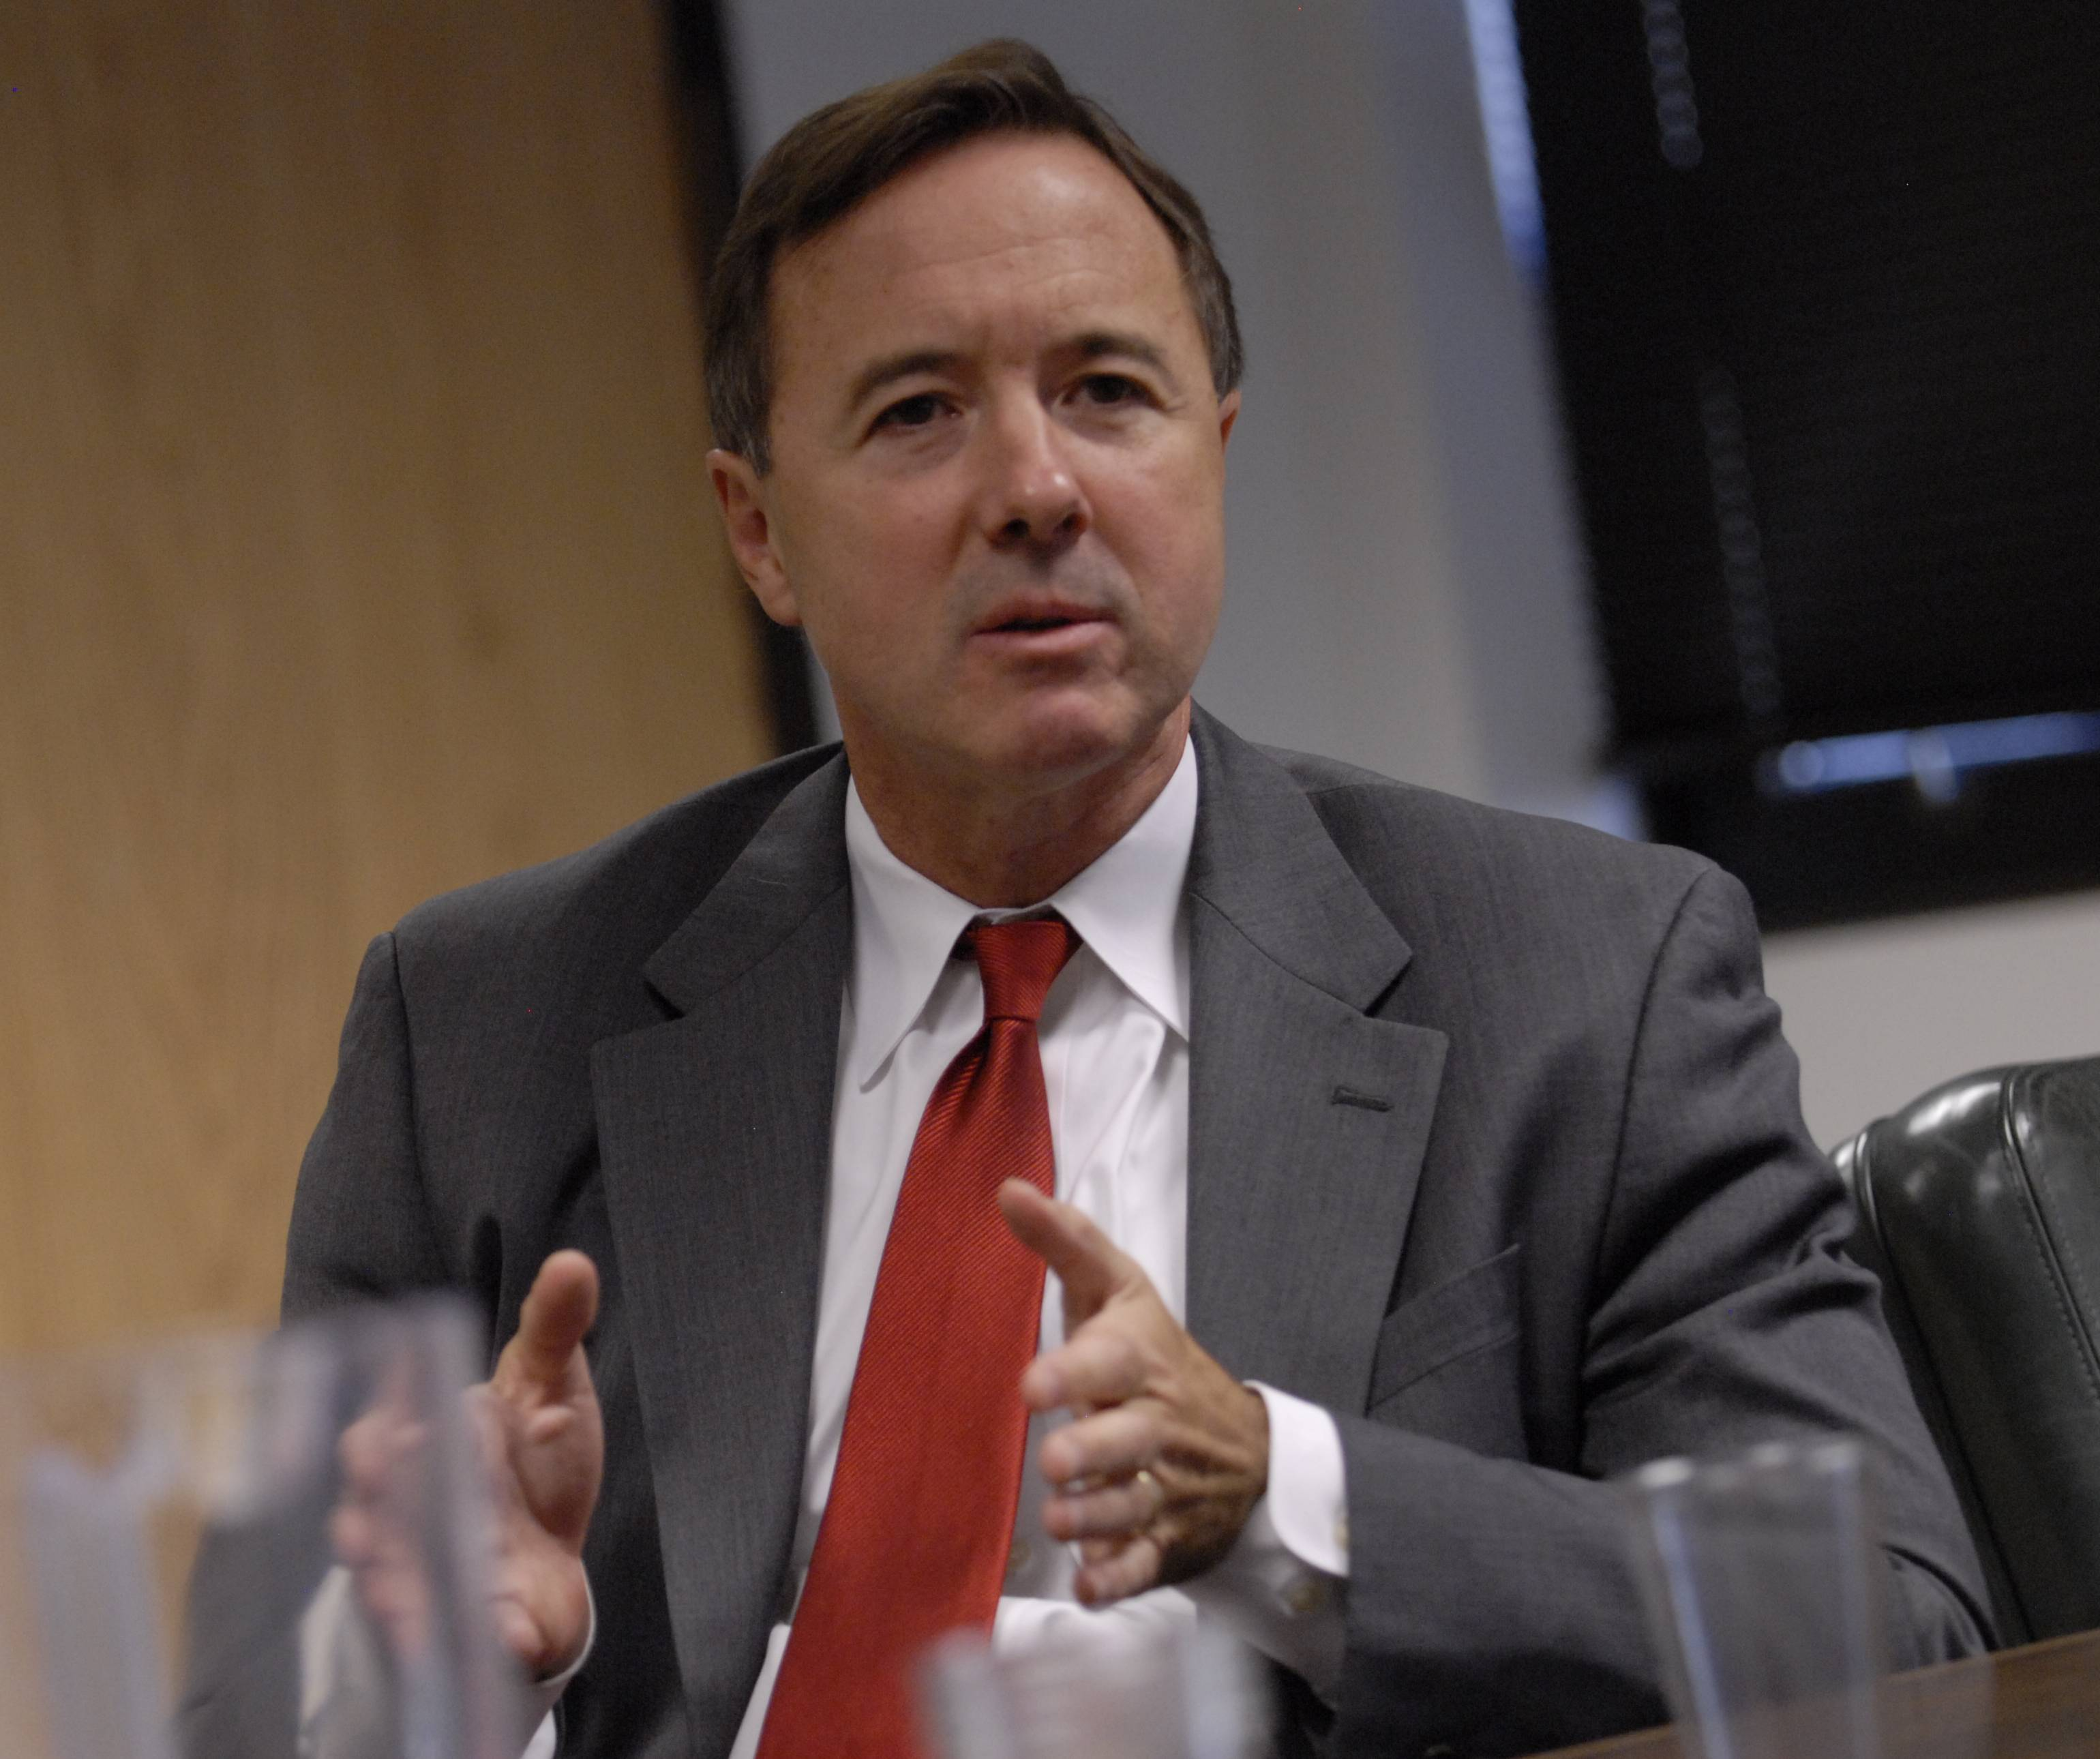 Forrest Claypool, as a candidate for Cook County assessor, interviewed with the Daily Herald in 2010.